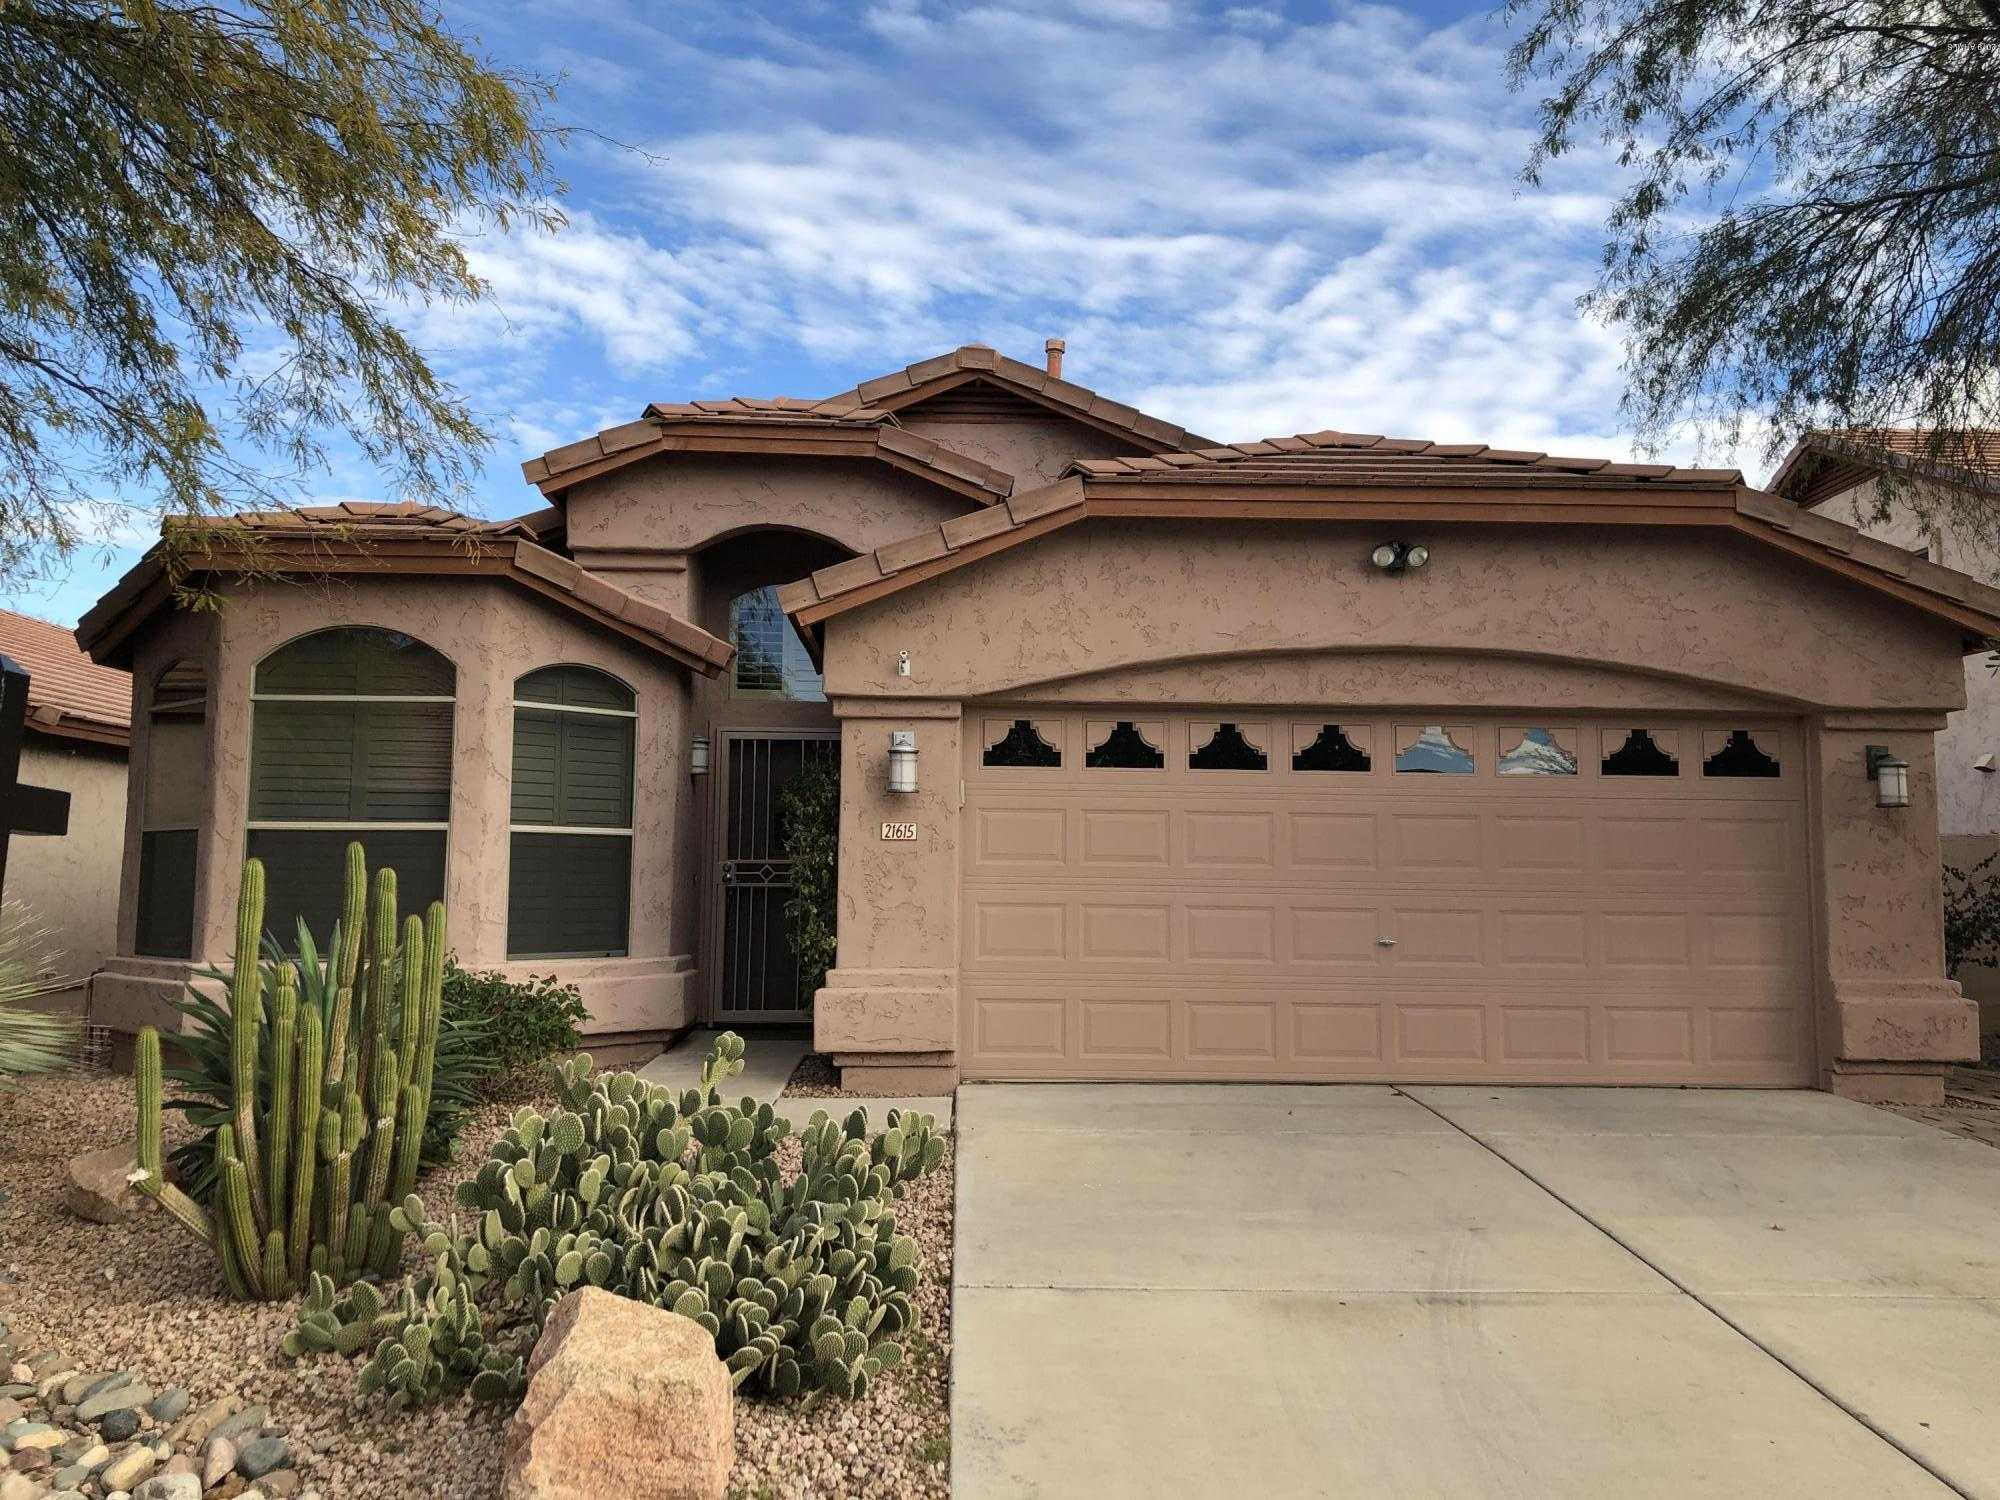 $379,000 - 3Br/2Ba - Home for Sale in Desert Ridge Parcel 7.6, Phoenix